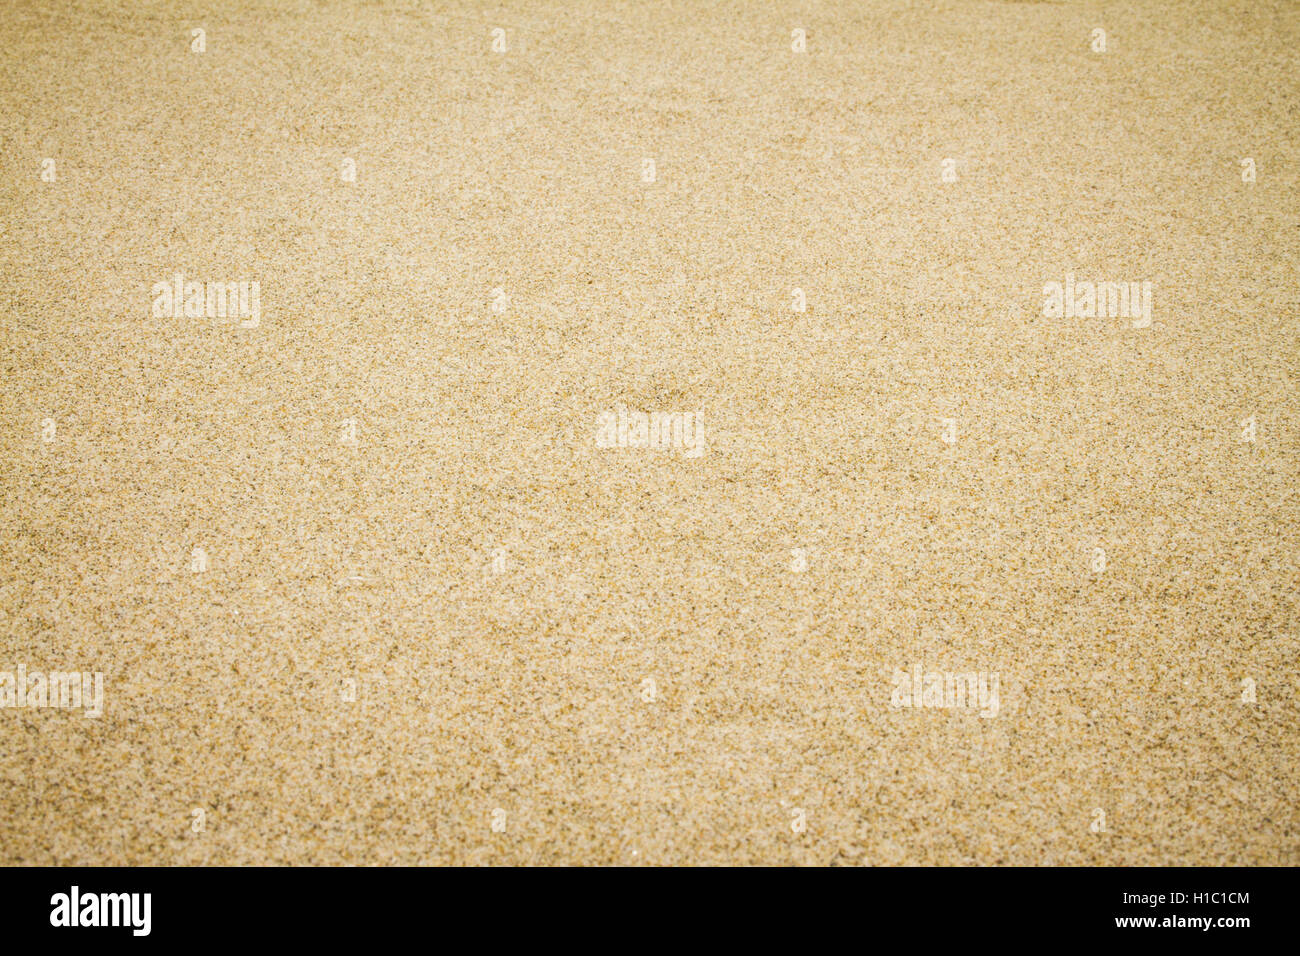 Natural brown sand background - Stock Image